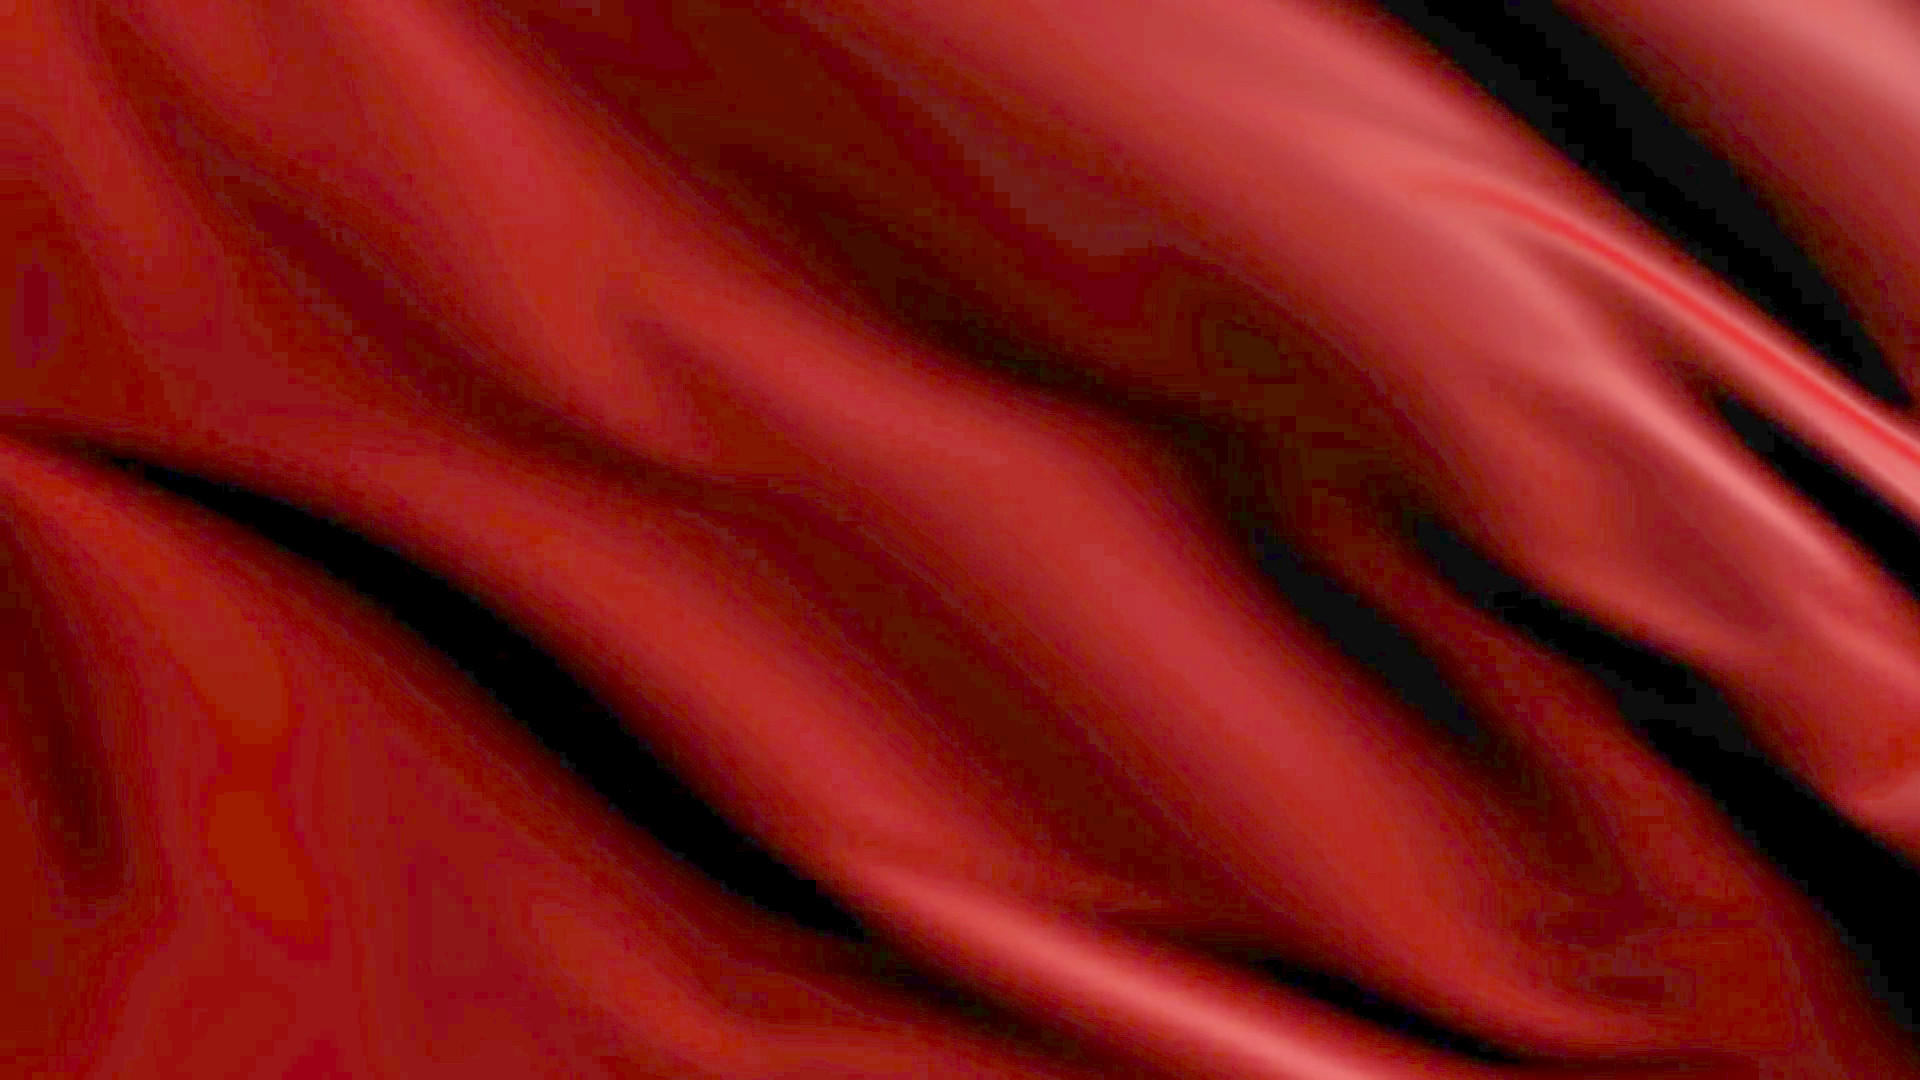 Res: 1920x1080, Luxurious red satin fabric loopable animated background Motion Background -  Videoblocks